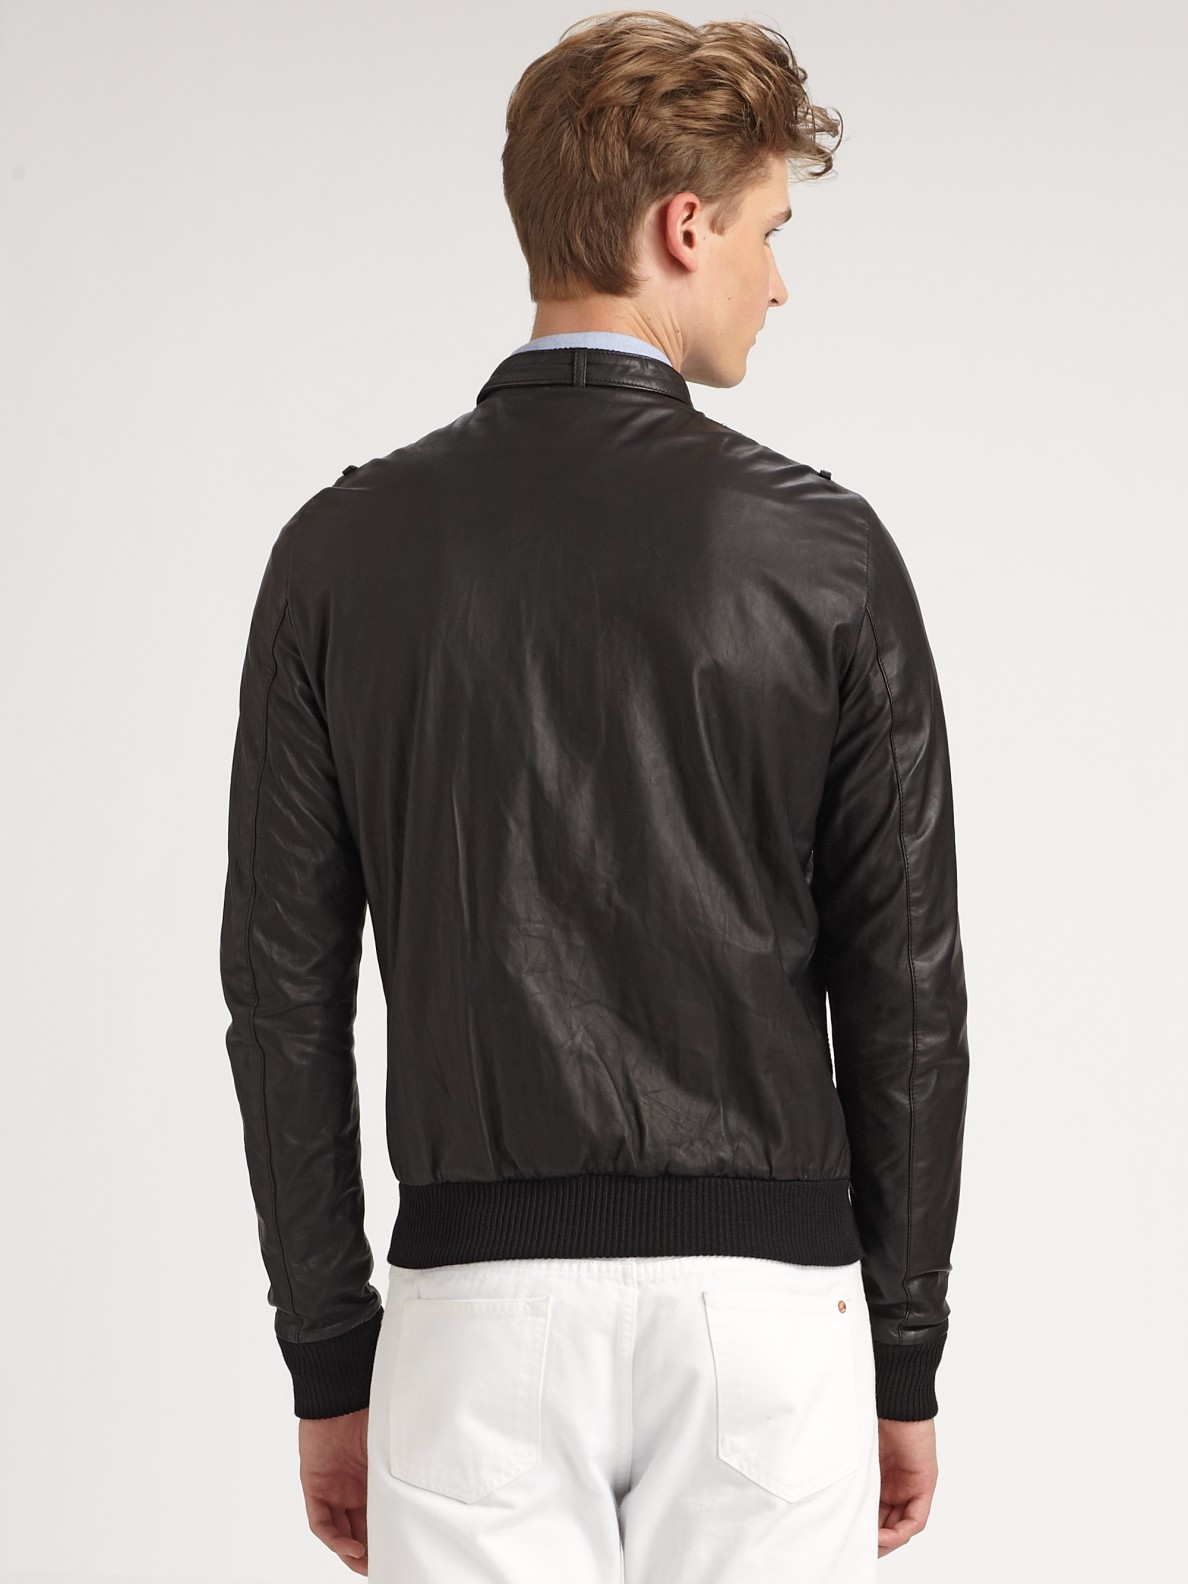 Band of outsiders Leather Jacket in Black for Men | Lyst